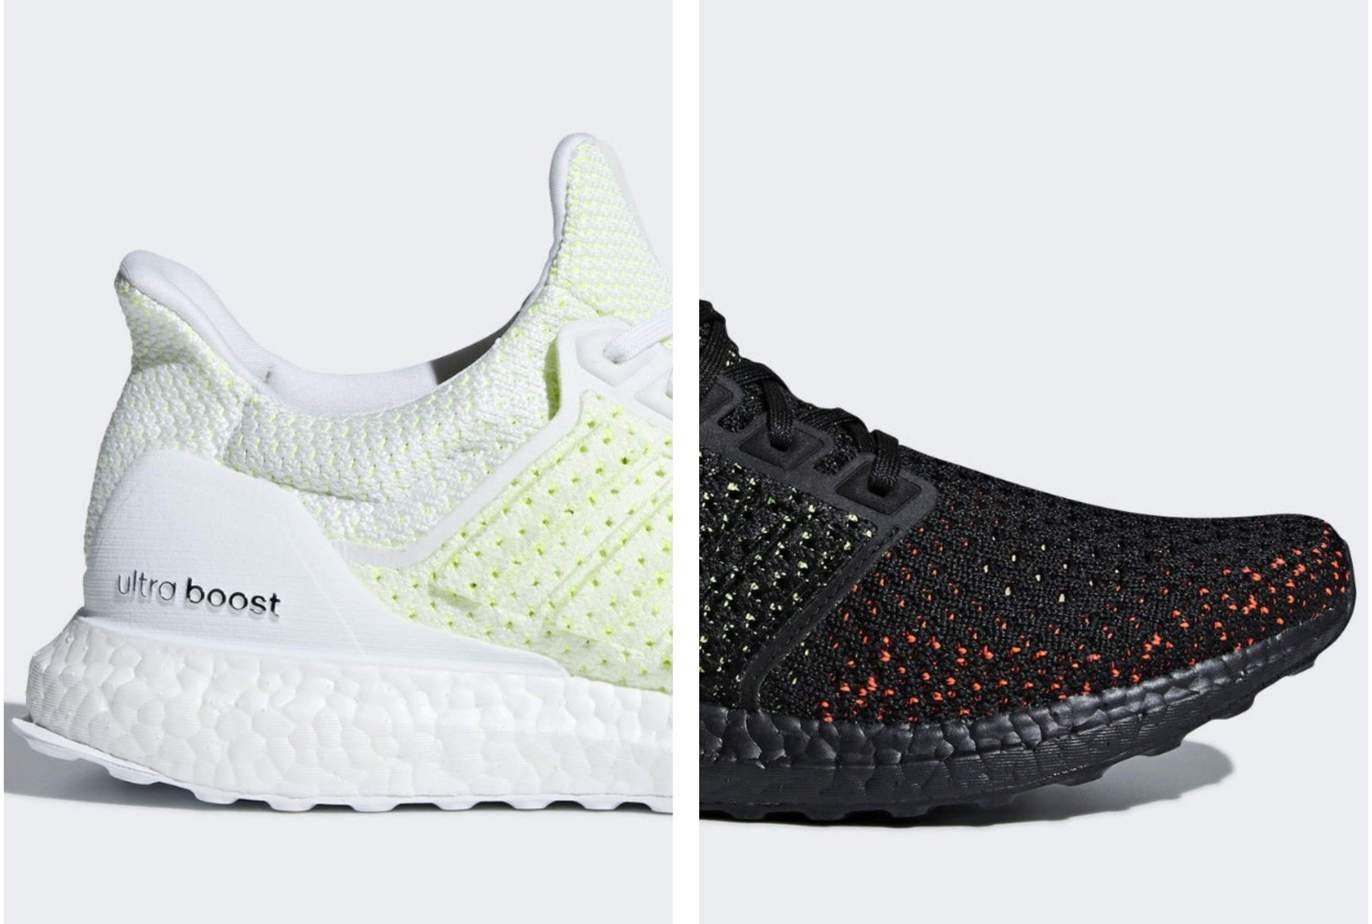 395cac0fe79 The adidas Ultra Boost Clima is off to an incredible start. Fans of the  running silhouette are calling it one of the most comfortable iterations of  the ...